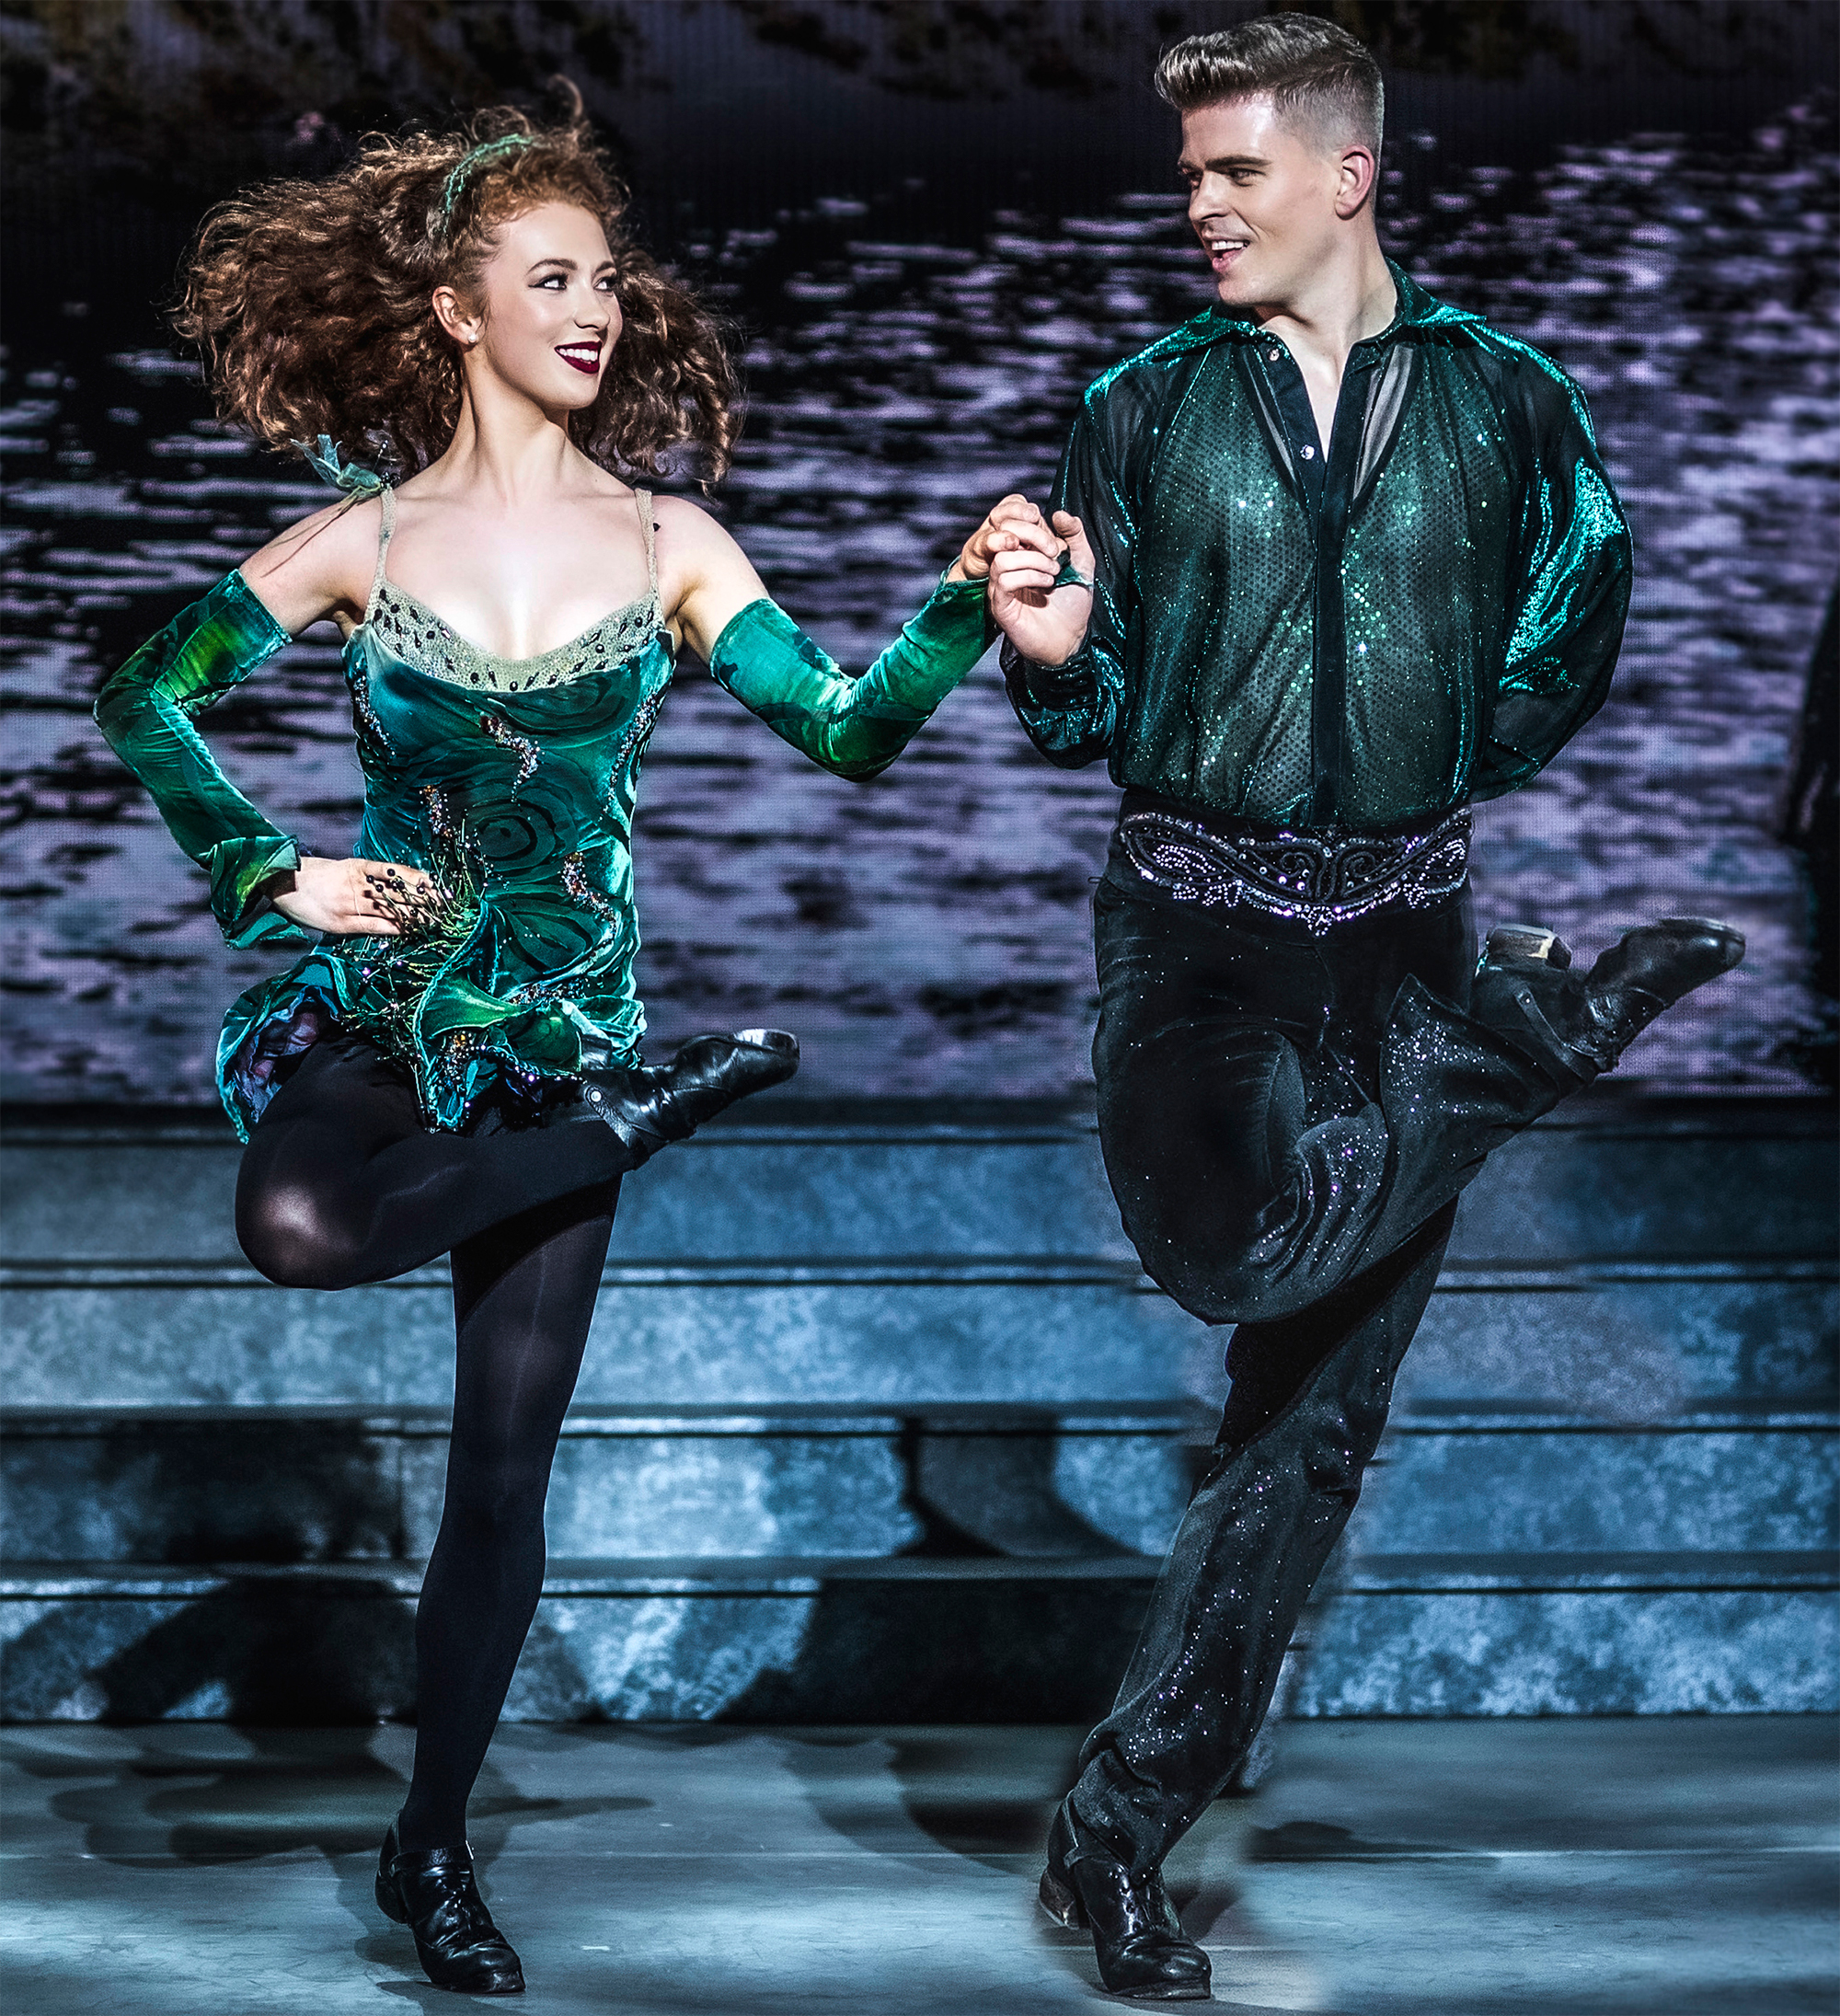 Image 1 of the Riverdance 25th Anniversary Show gallery